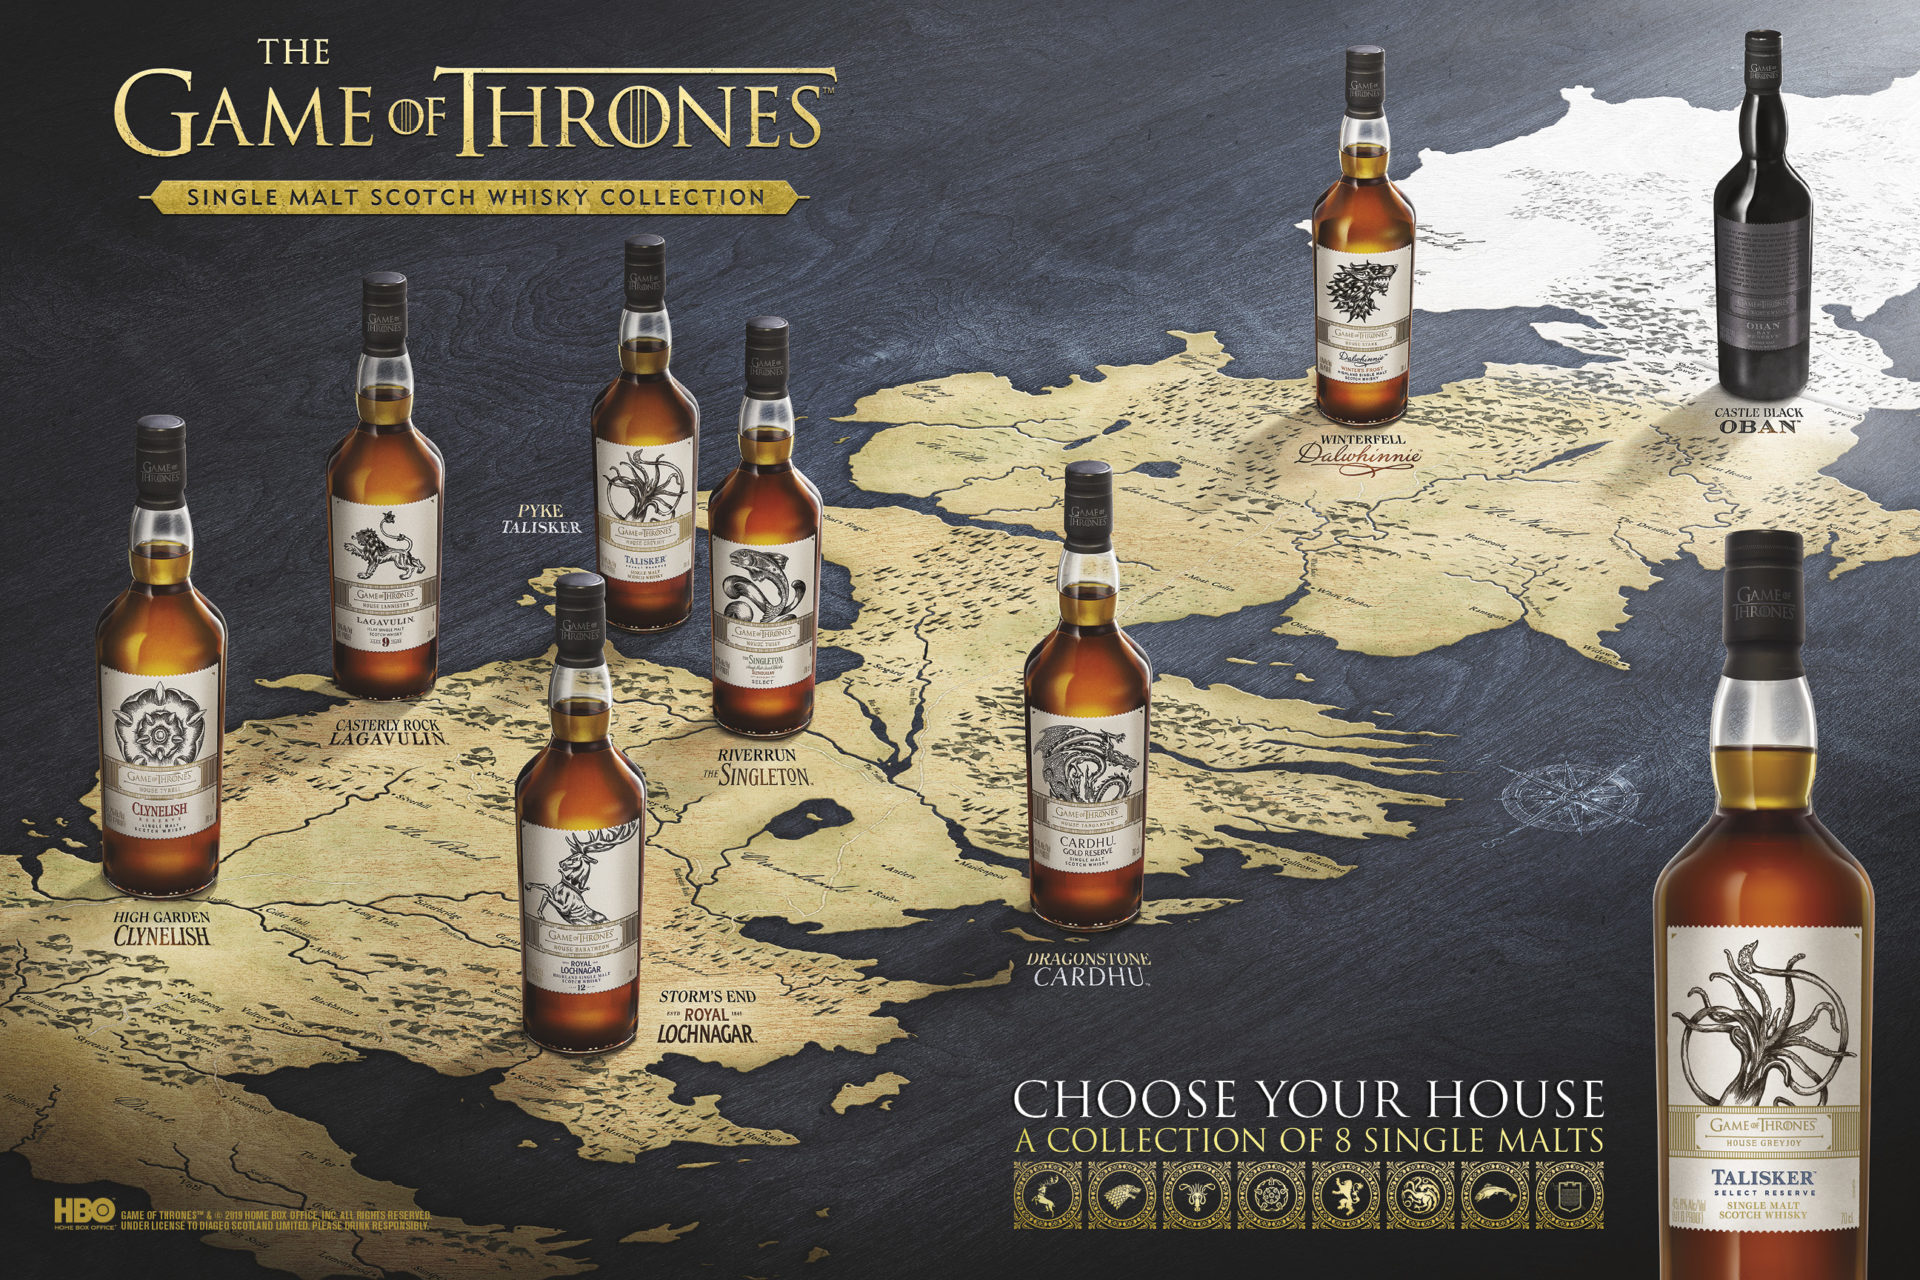 The best present you could ever buy a Game of Thrones Whisky Fan: Single Malt Scotch Whisky Collection - Westeros Map